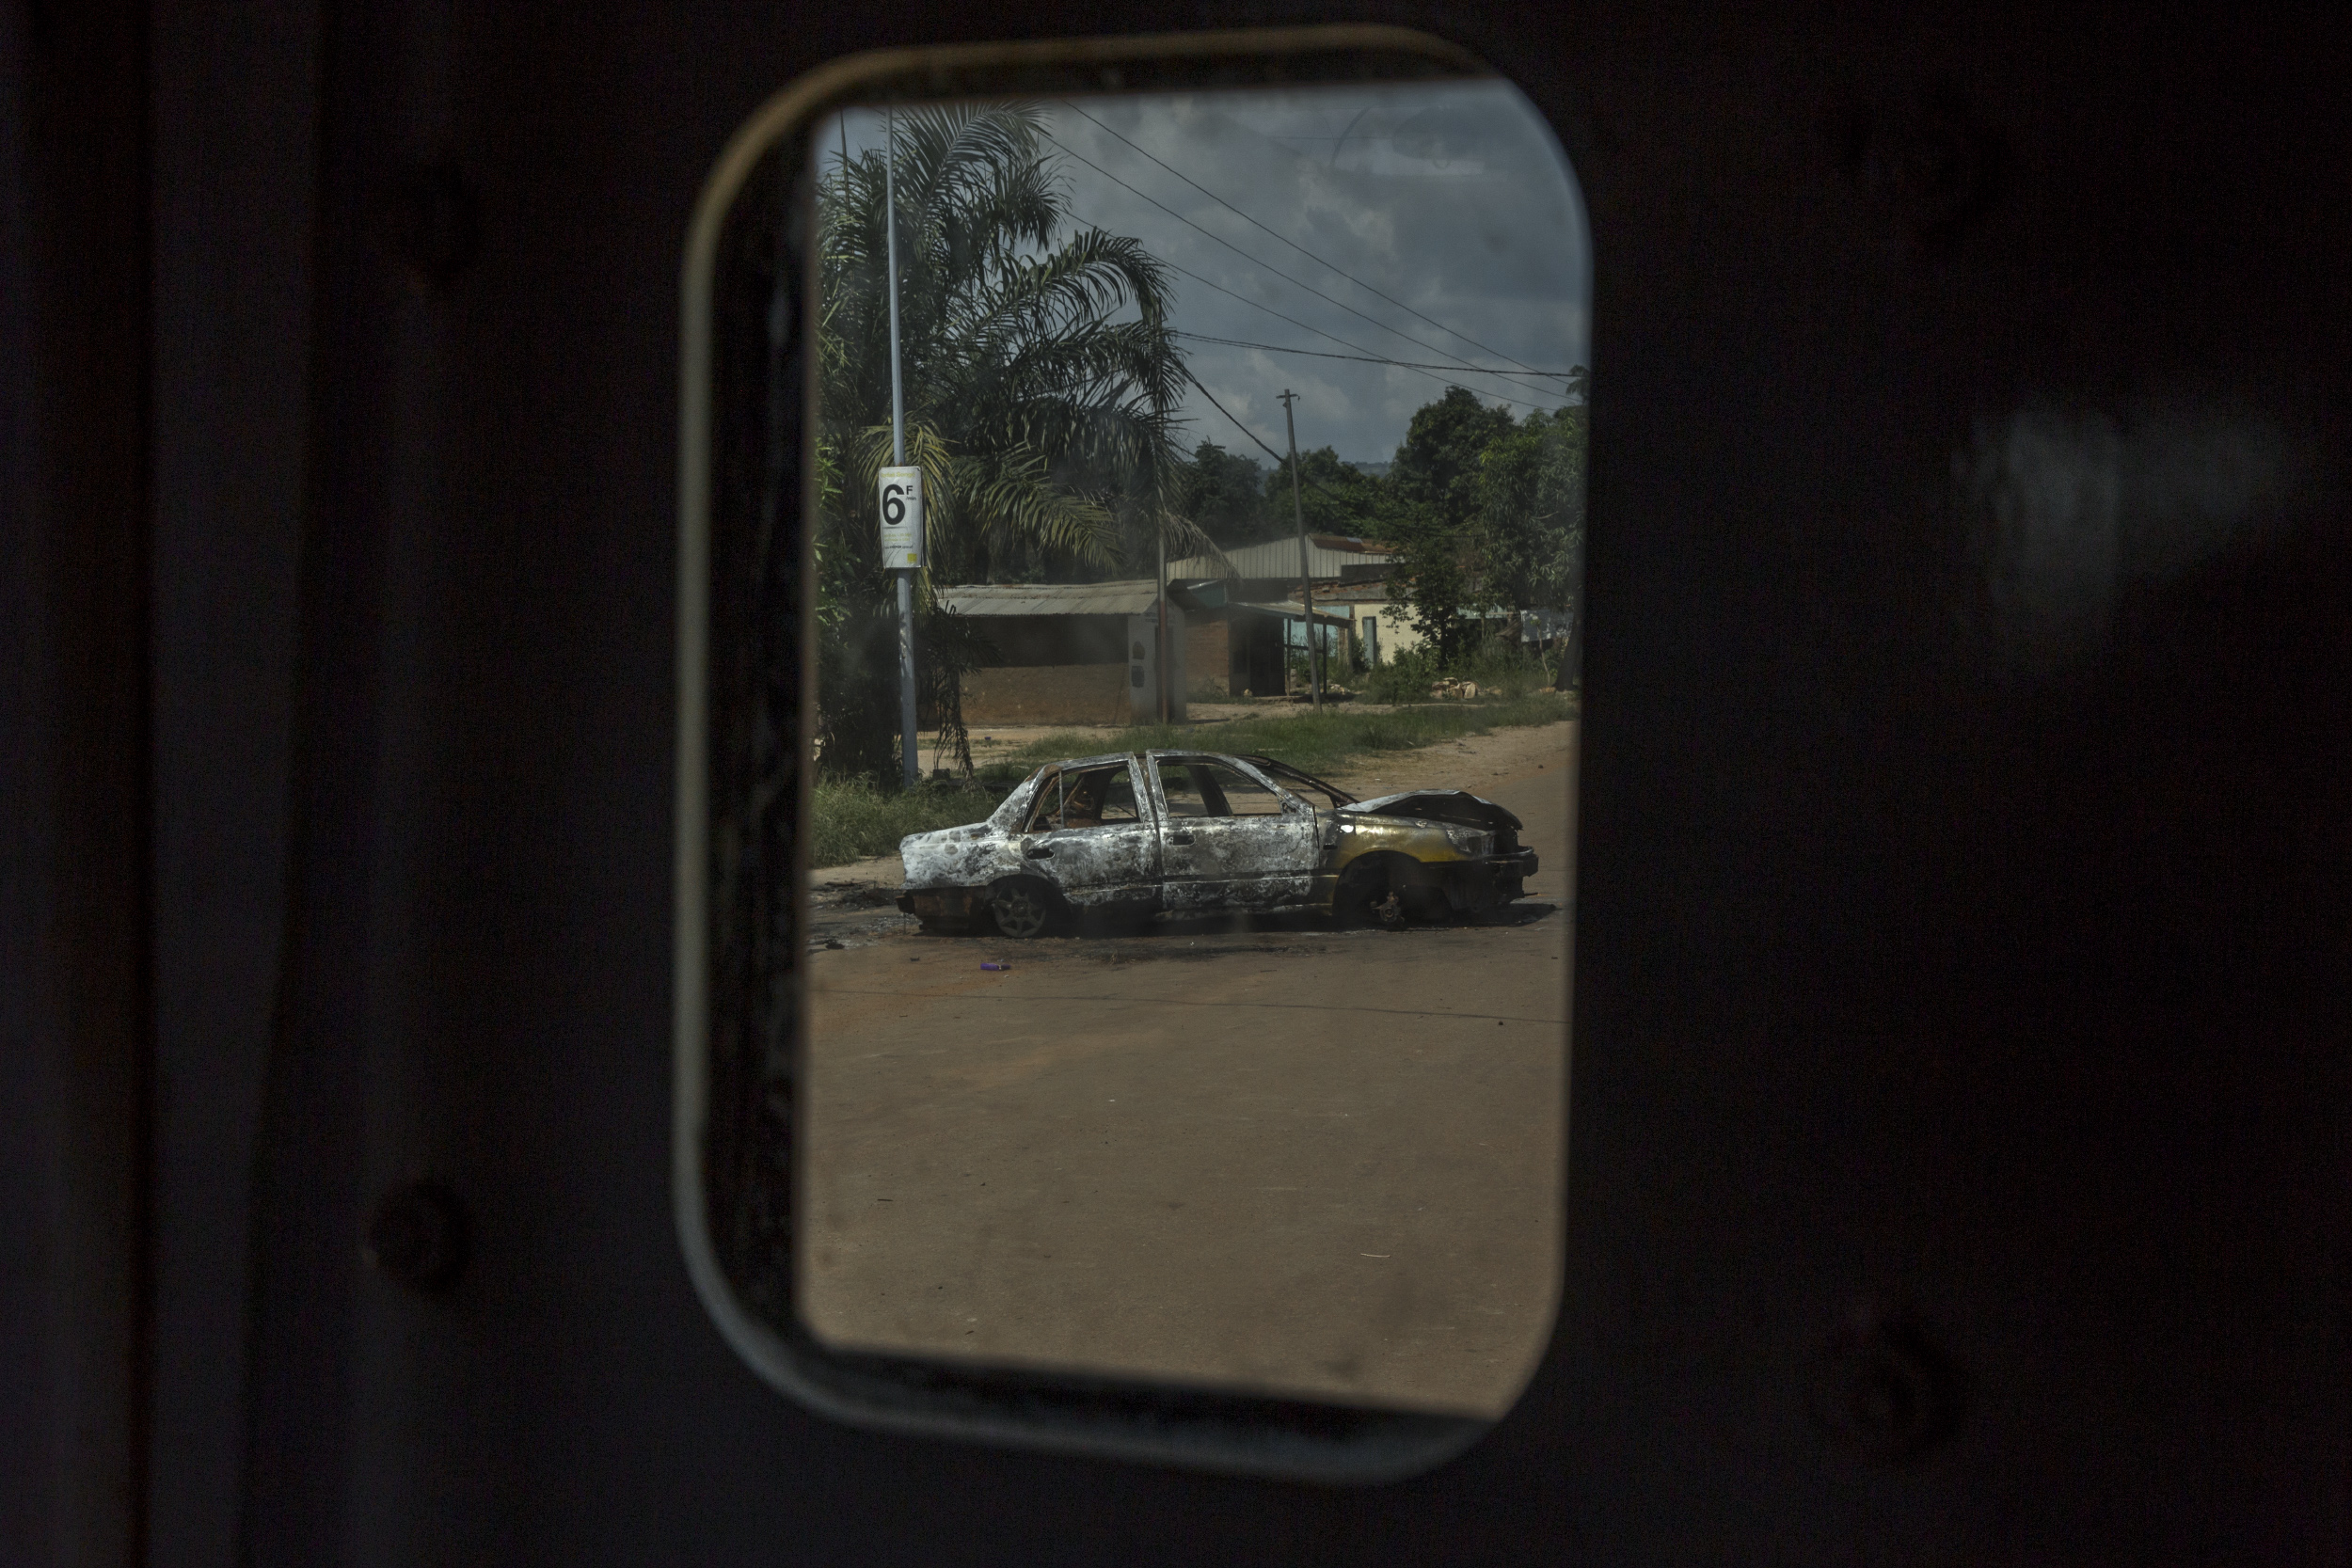 A burned car is seen from the window of a United Nations armored vehicle, a few days after heavy clashes erupted in Bangui following the murder of a young Muslim, on Oct. 3, 2015.